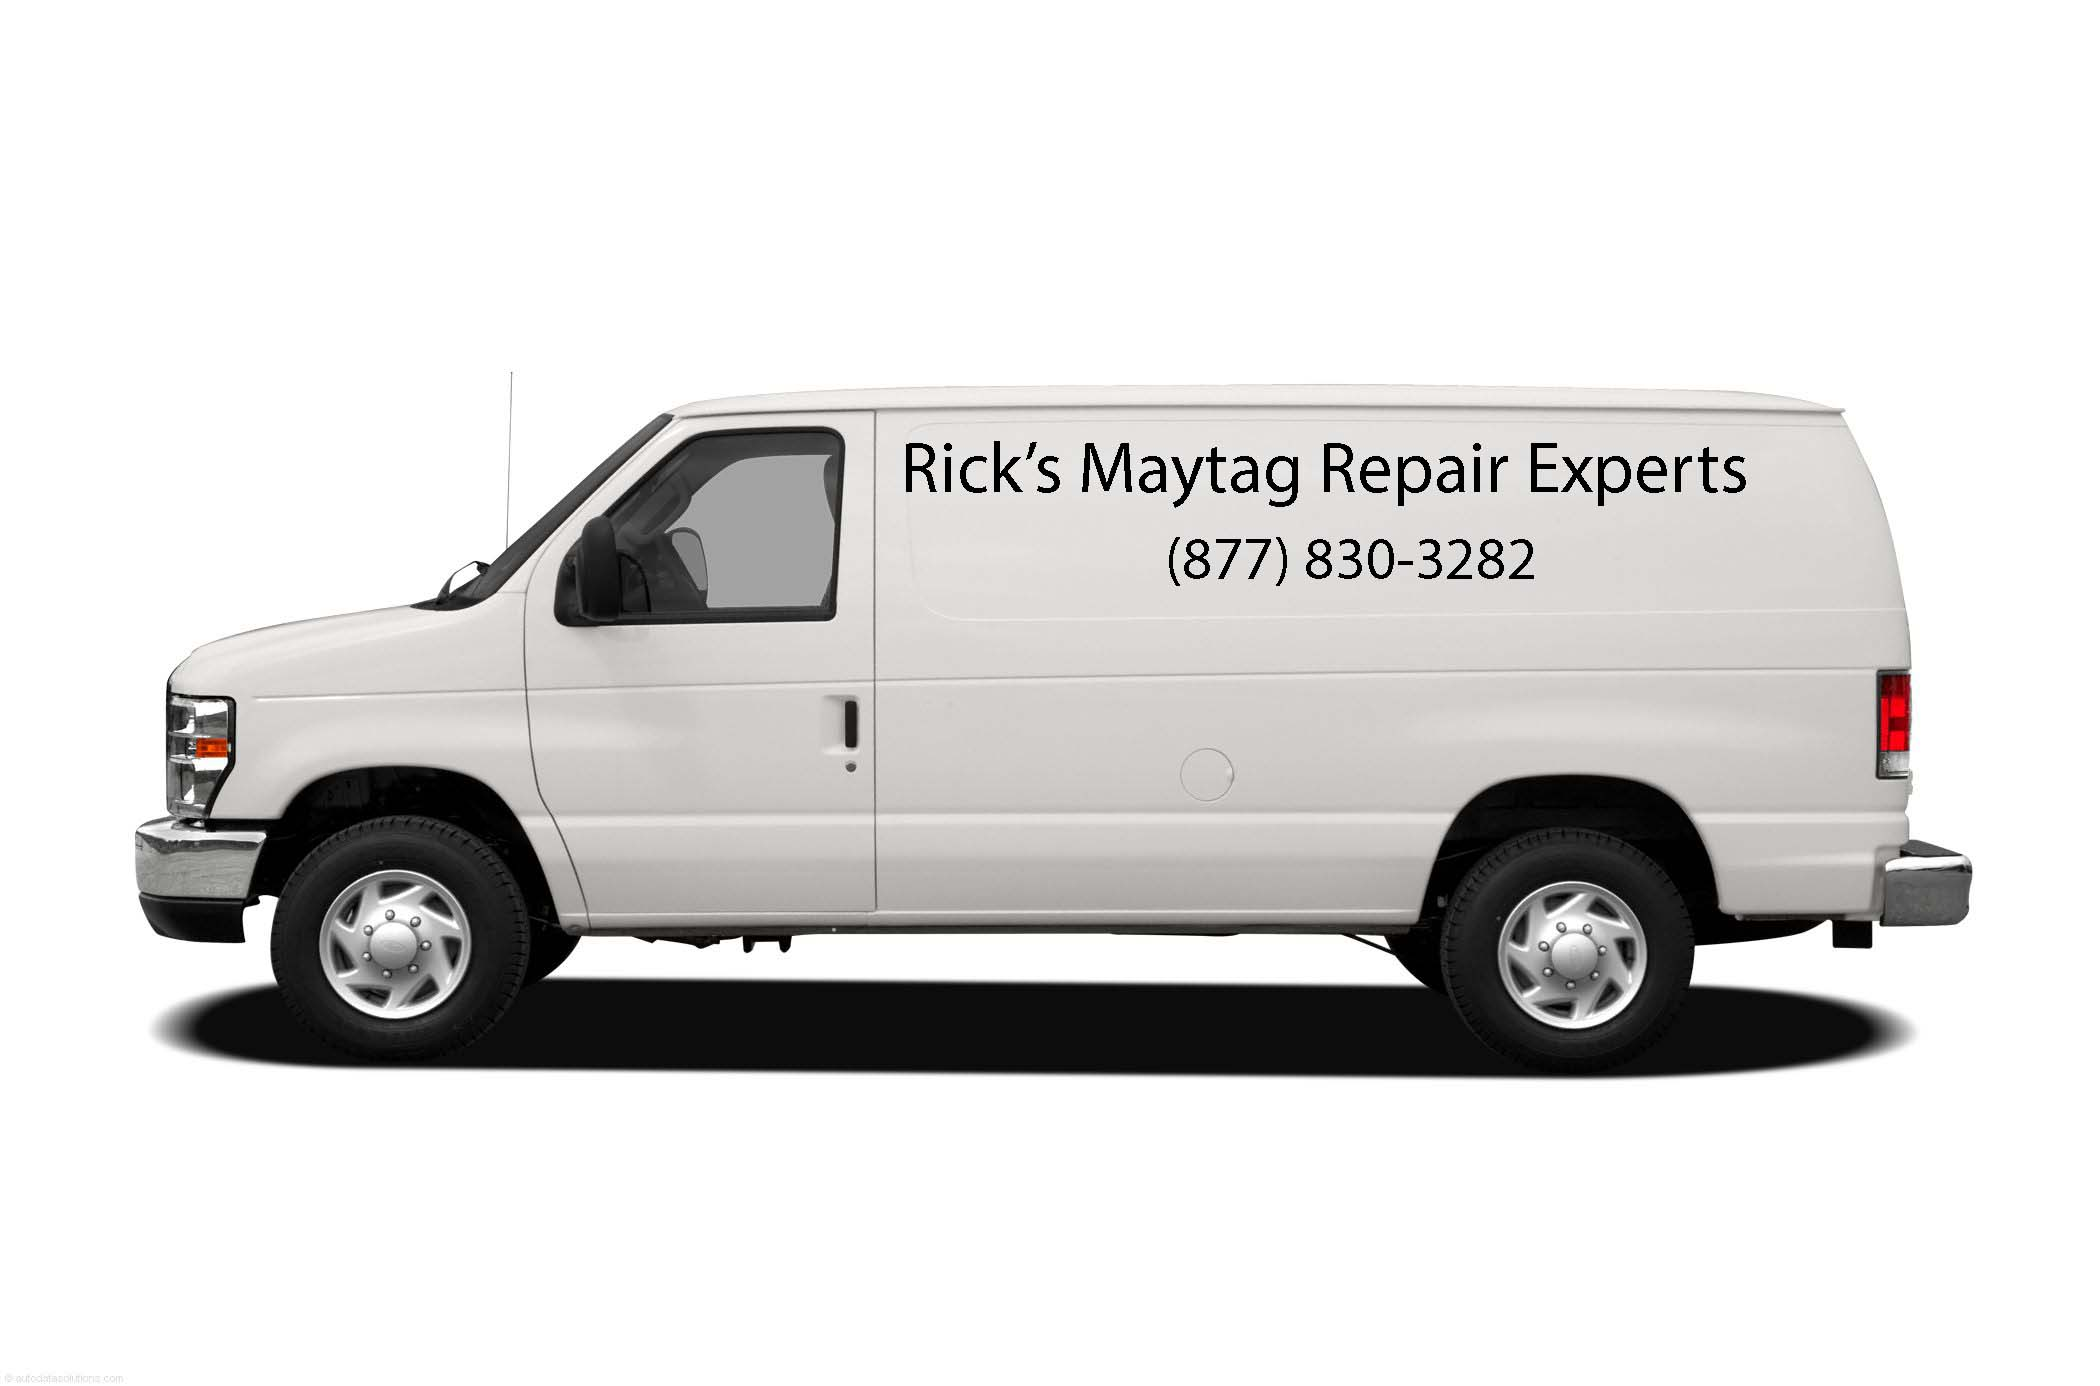 Rick's Maytag Repair Experts